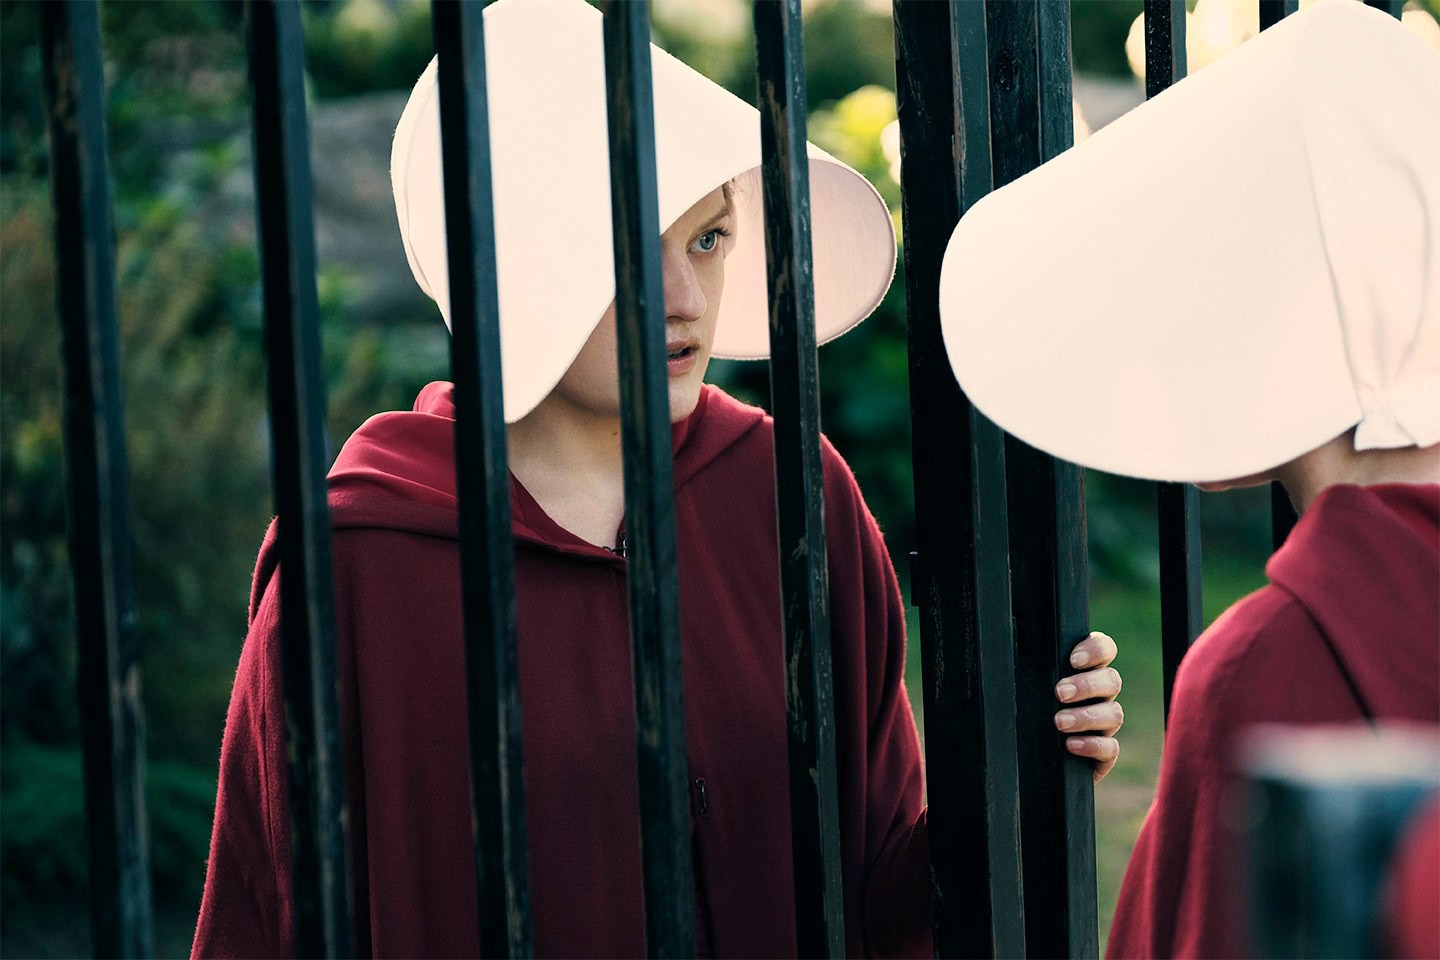 Injury By Proxy Why The Handmaids Tale Is So Painful To Watch